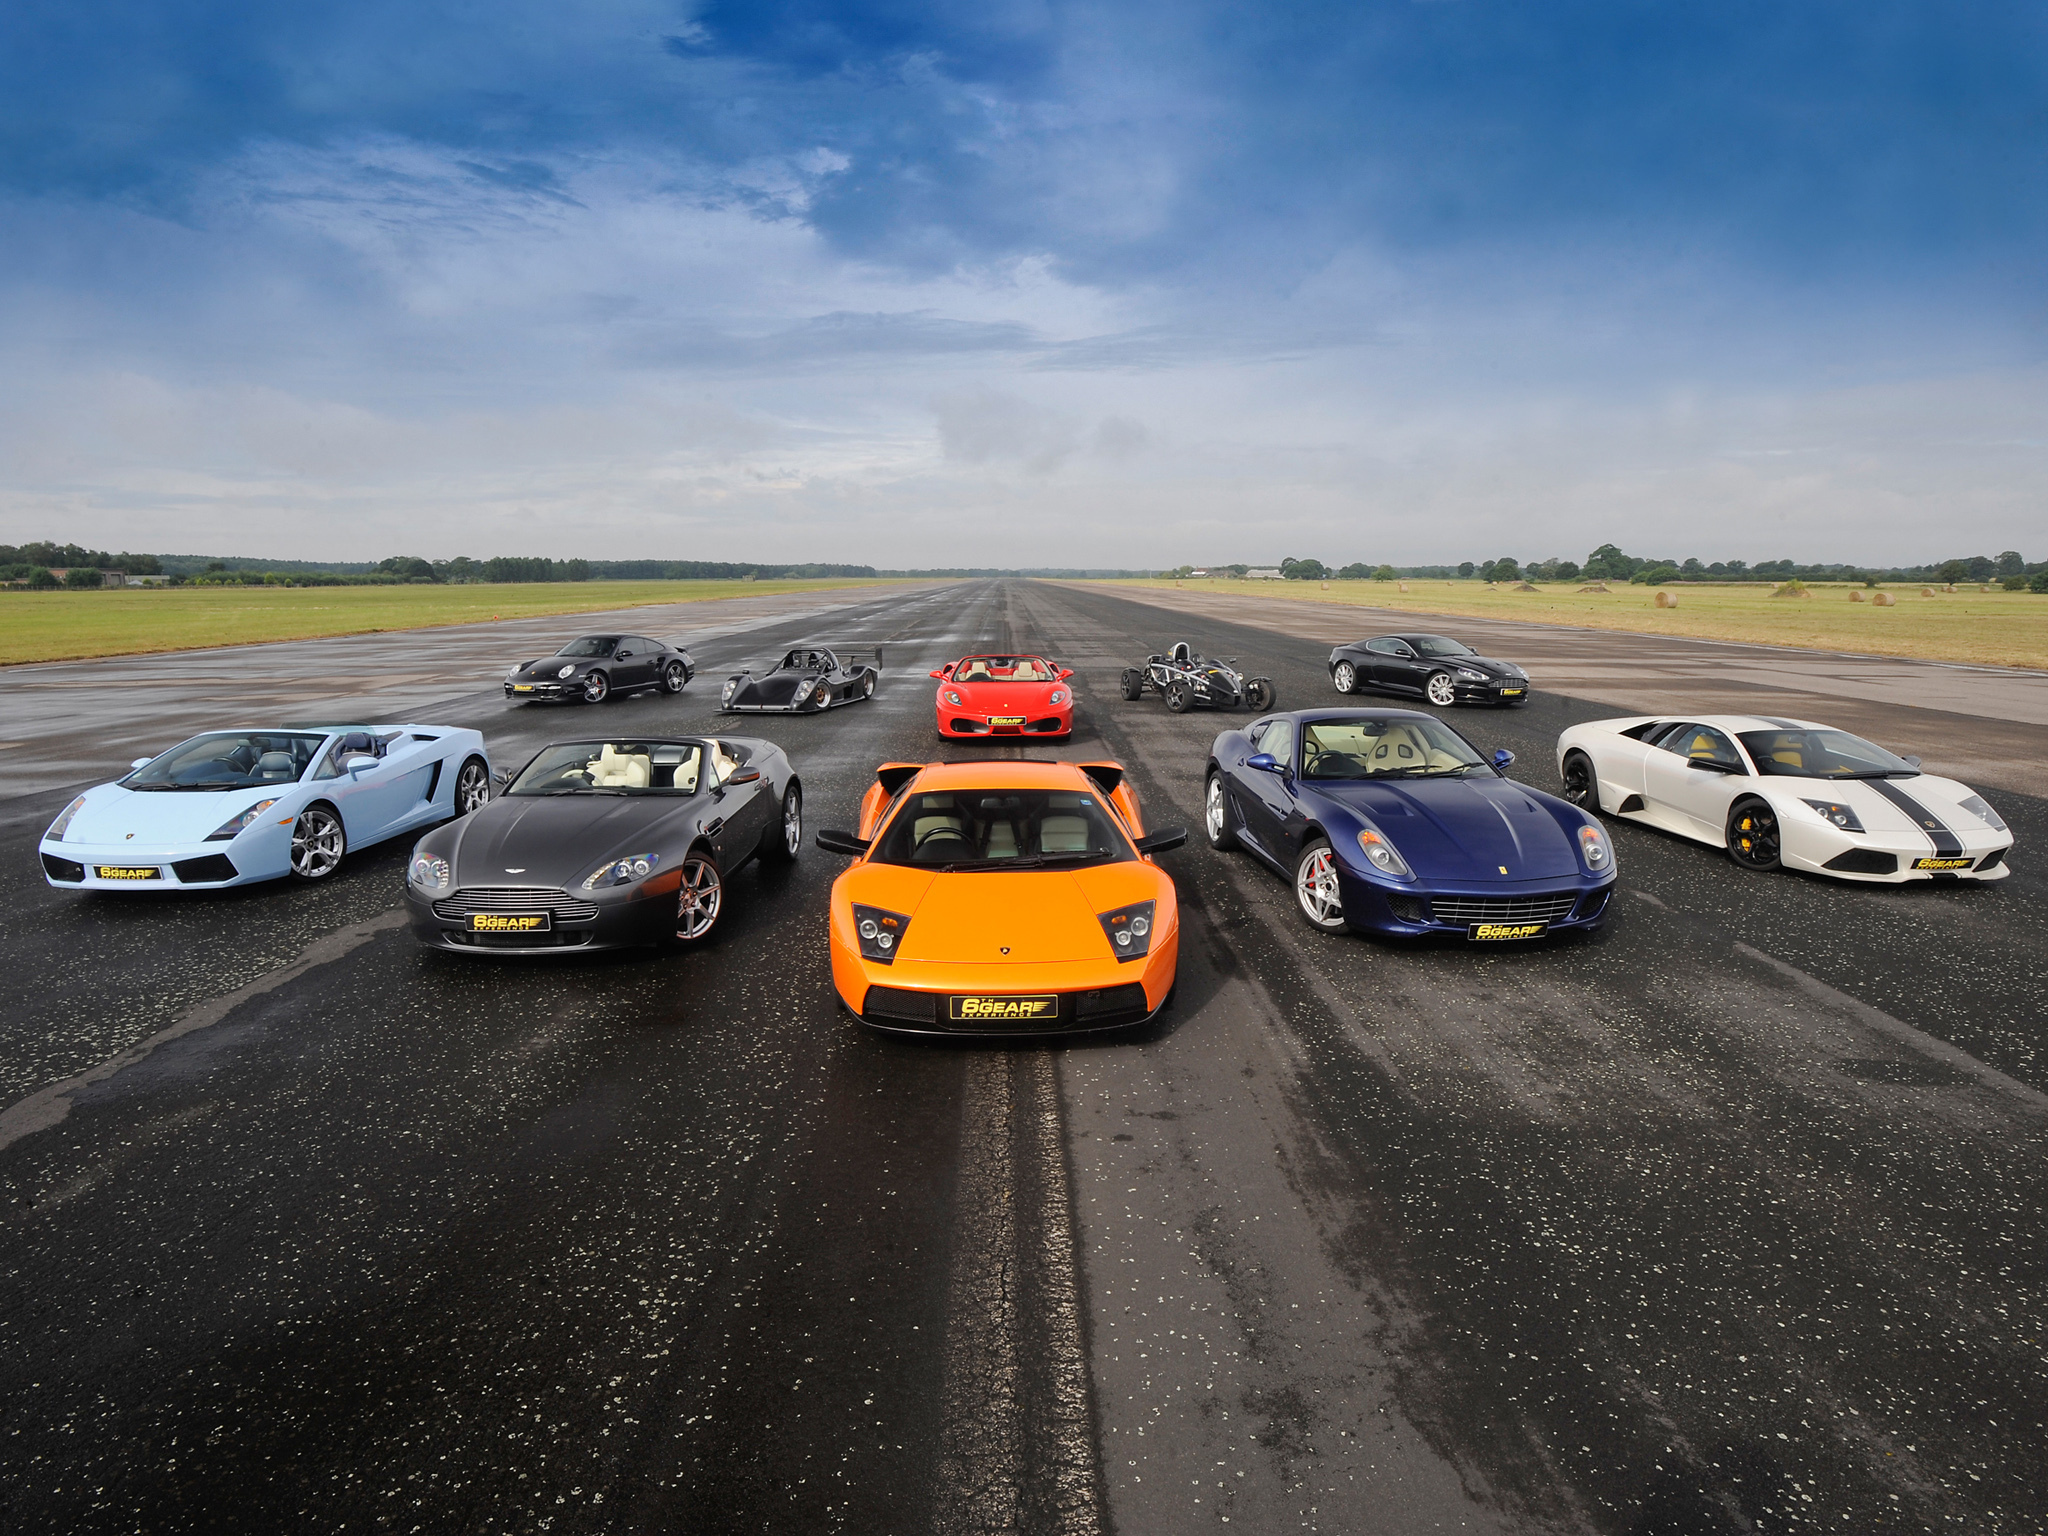 Top Gear HD Wallpapers Background Images Wallpaper Abyss - Top gear car show